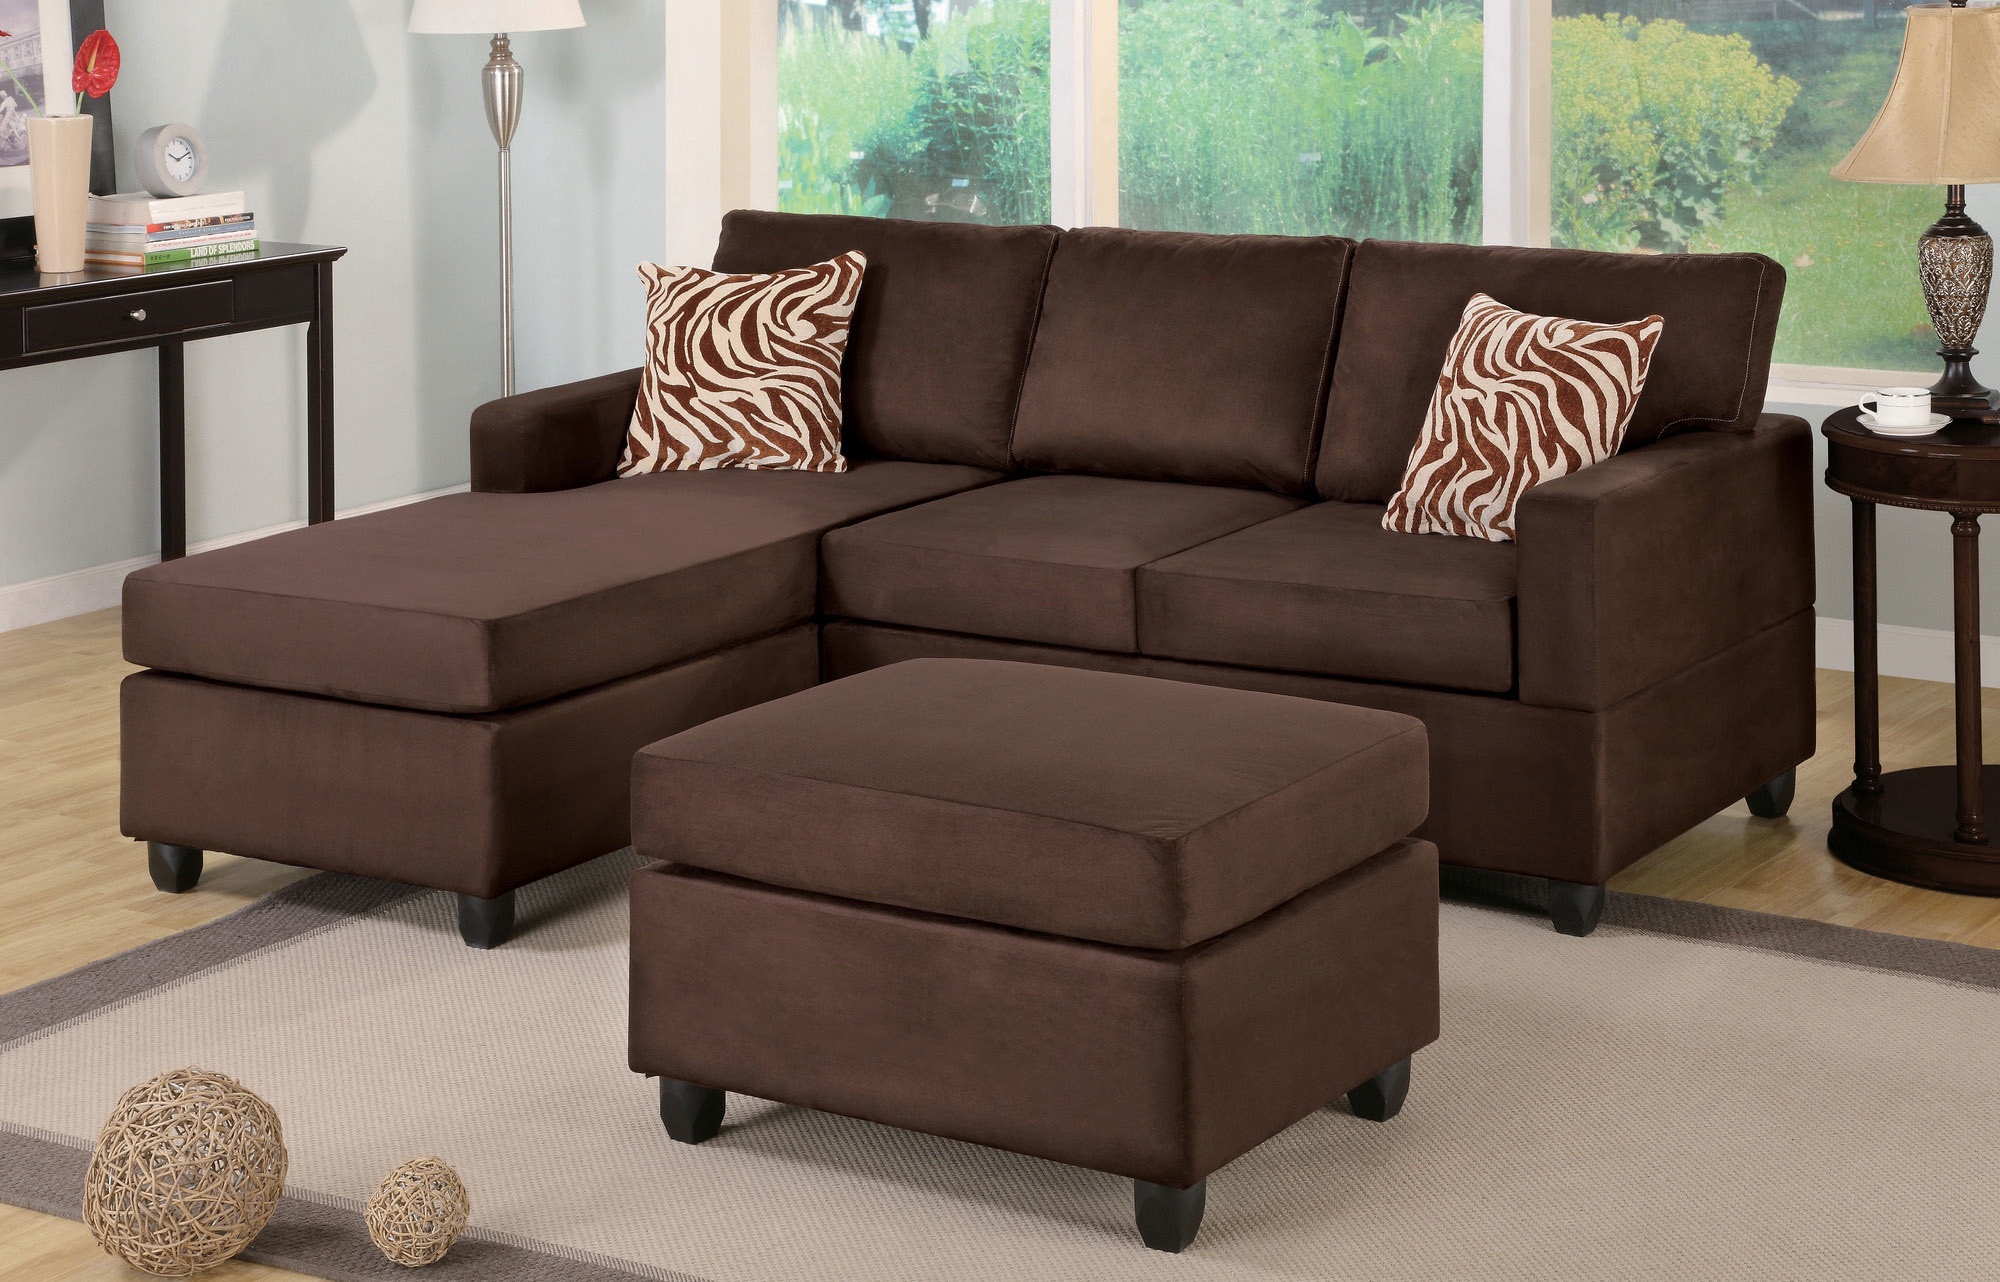 Great couch covers with cushions for sectionals  for living room with furniture covers for sectionals